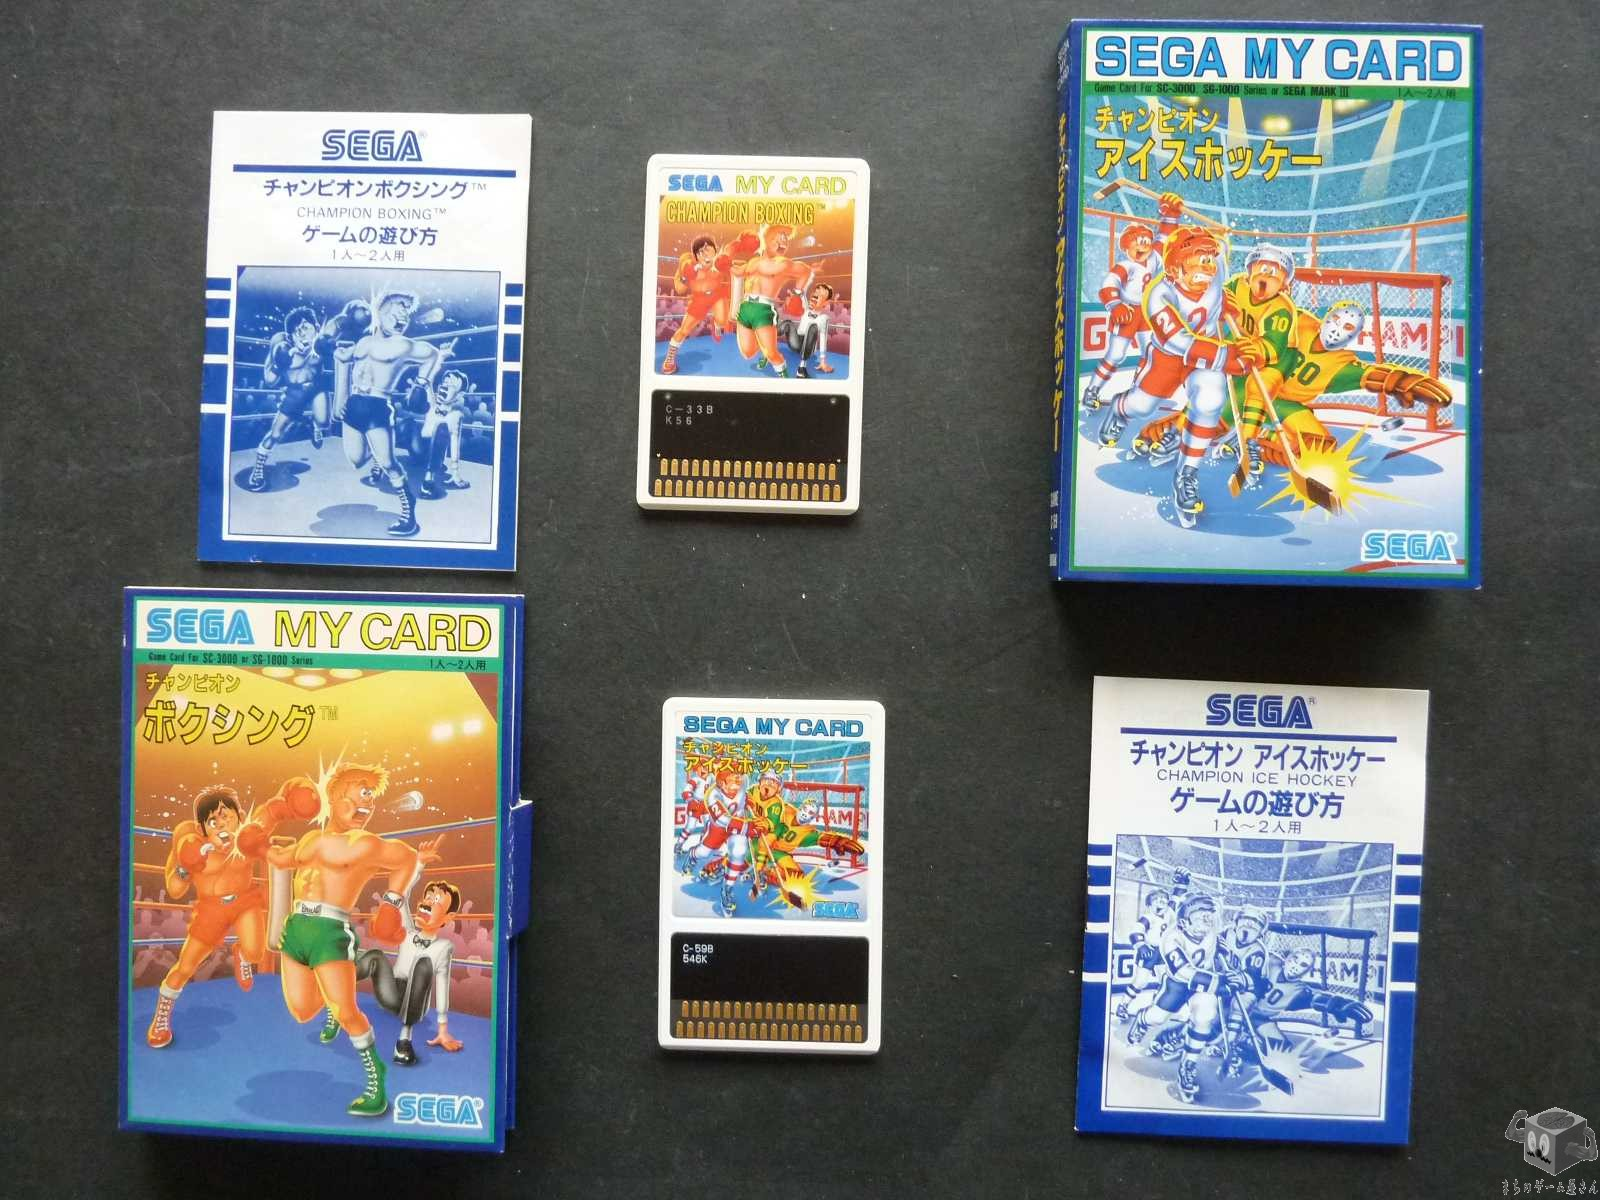 [MARK3] Sega My Card Mark III - Champion Boxing + Ice Hockey Mycard